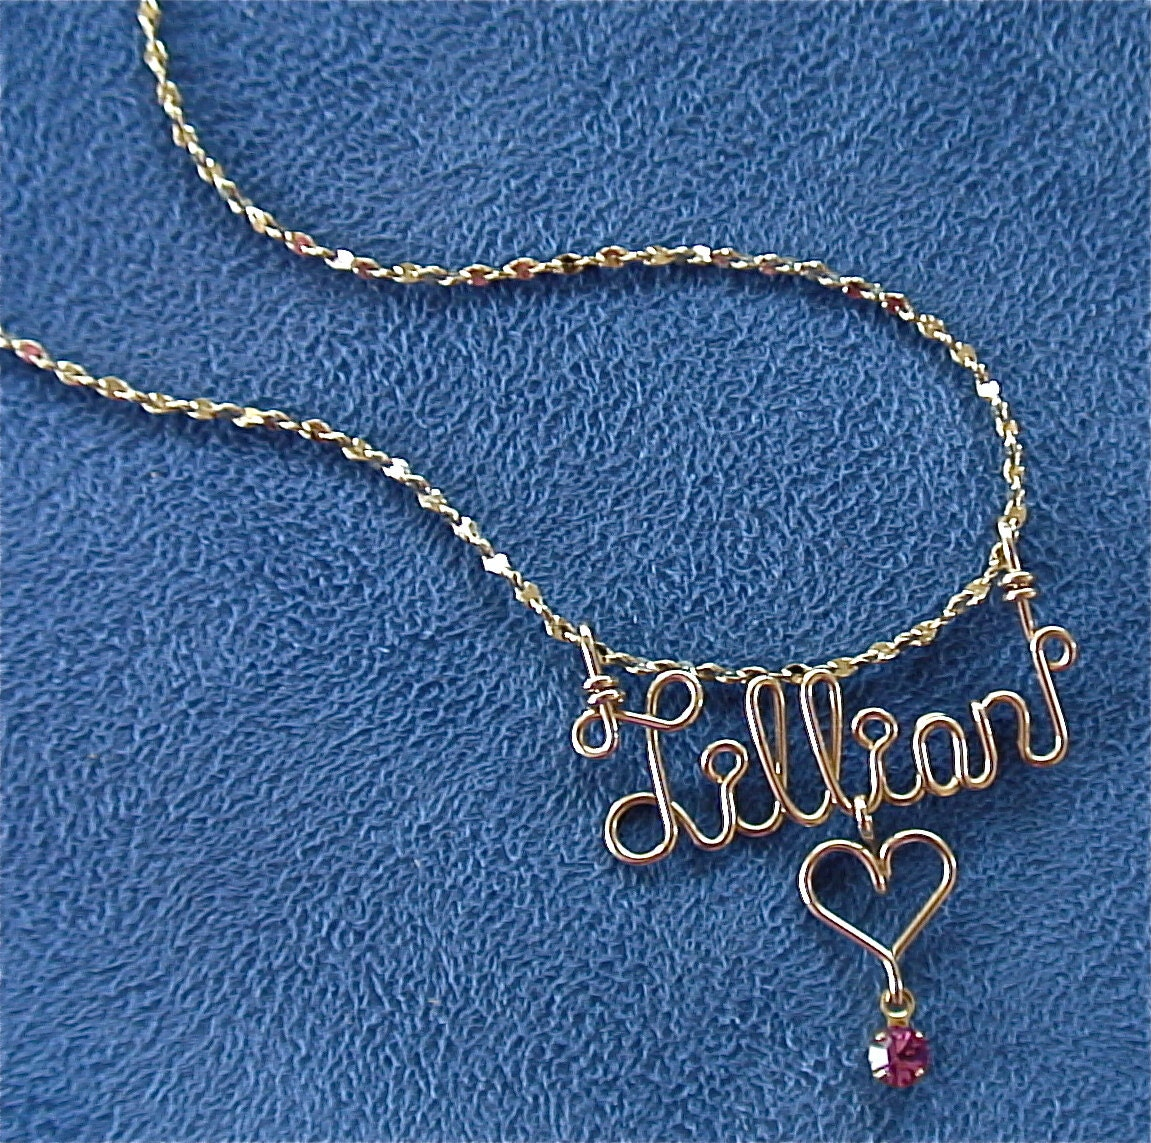 Personalized Jewelry Gold Wire Name Necklace w/Heart Cross